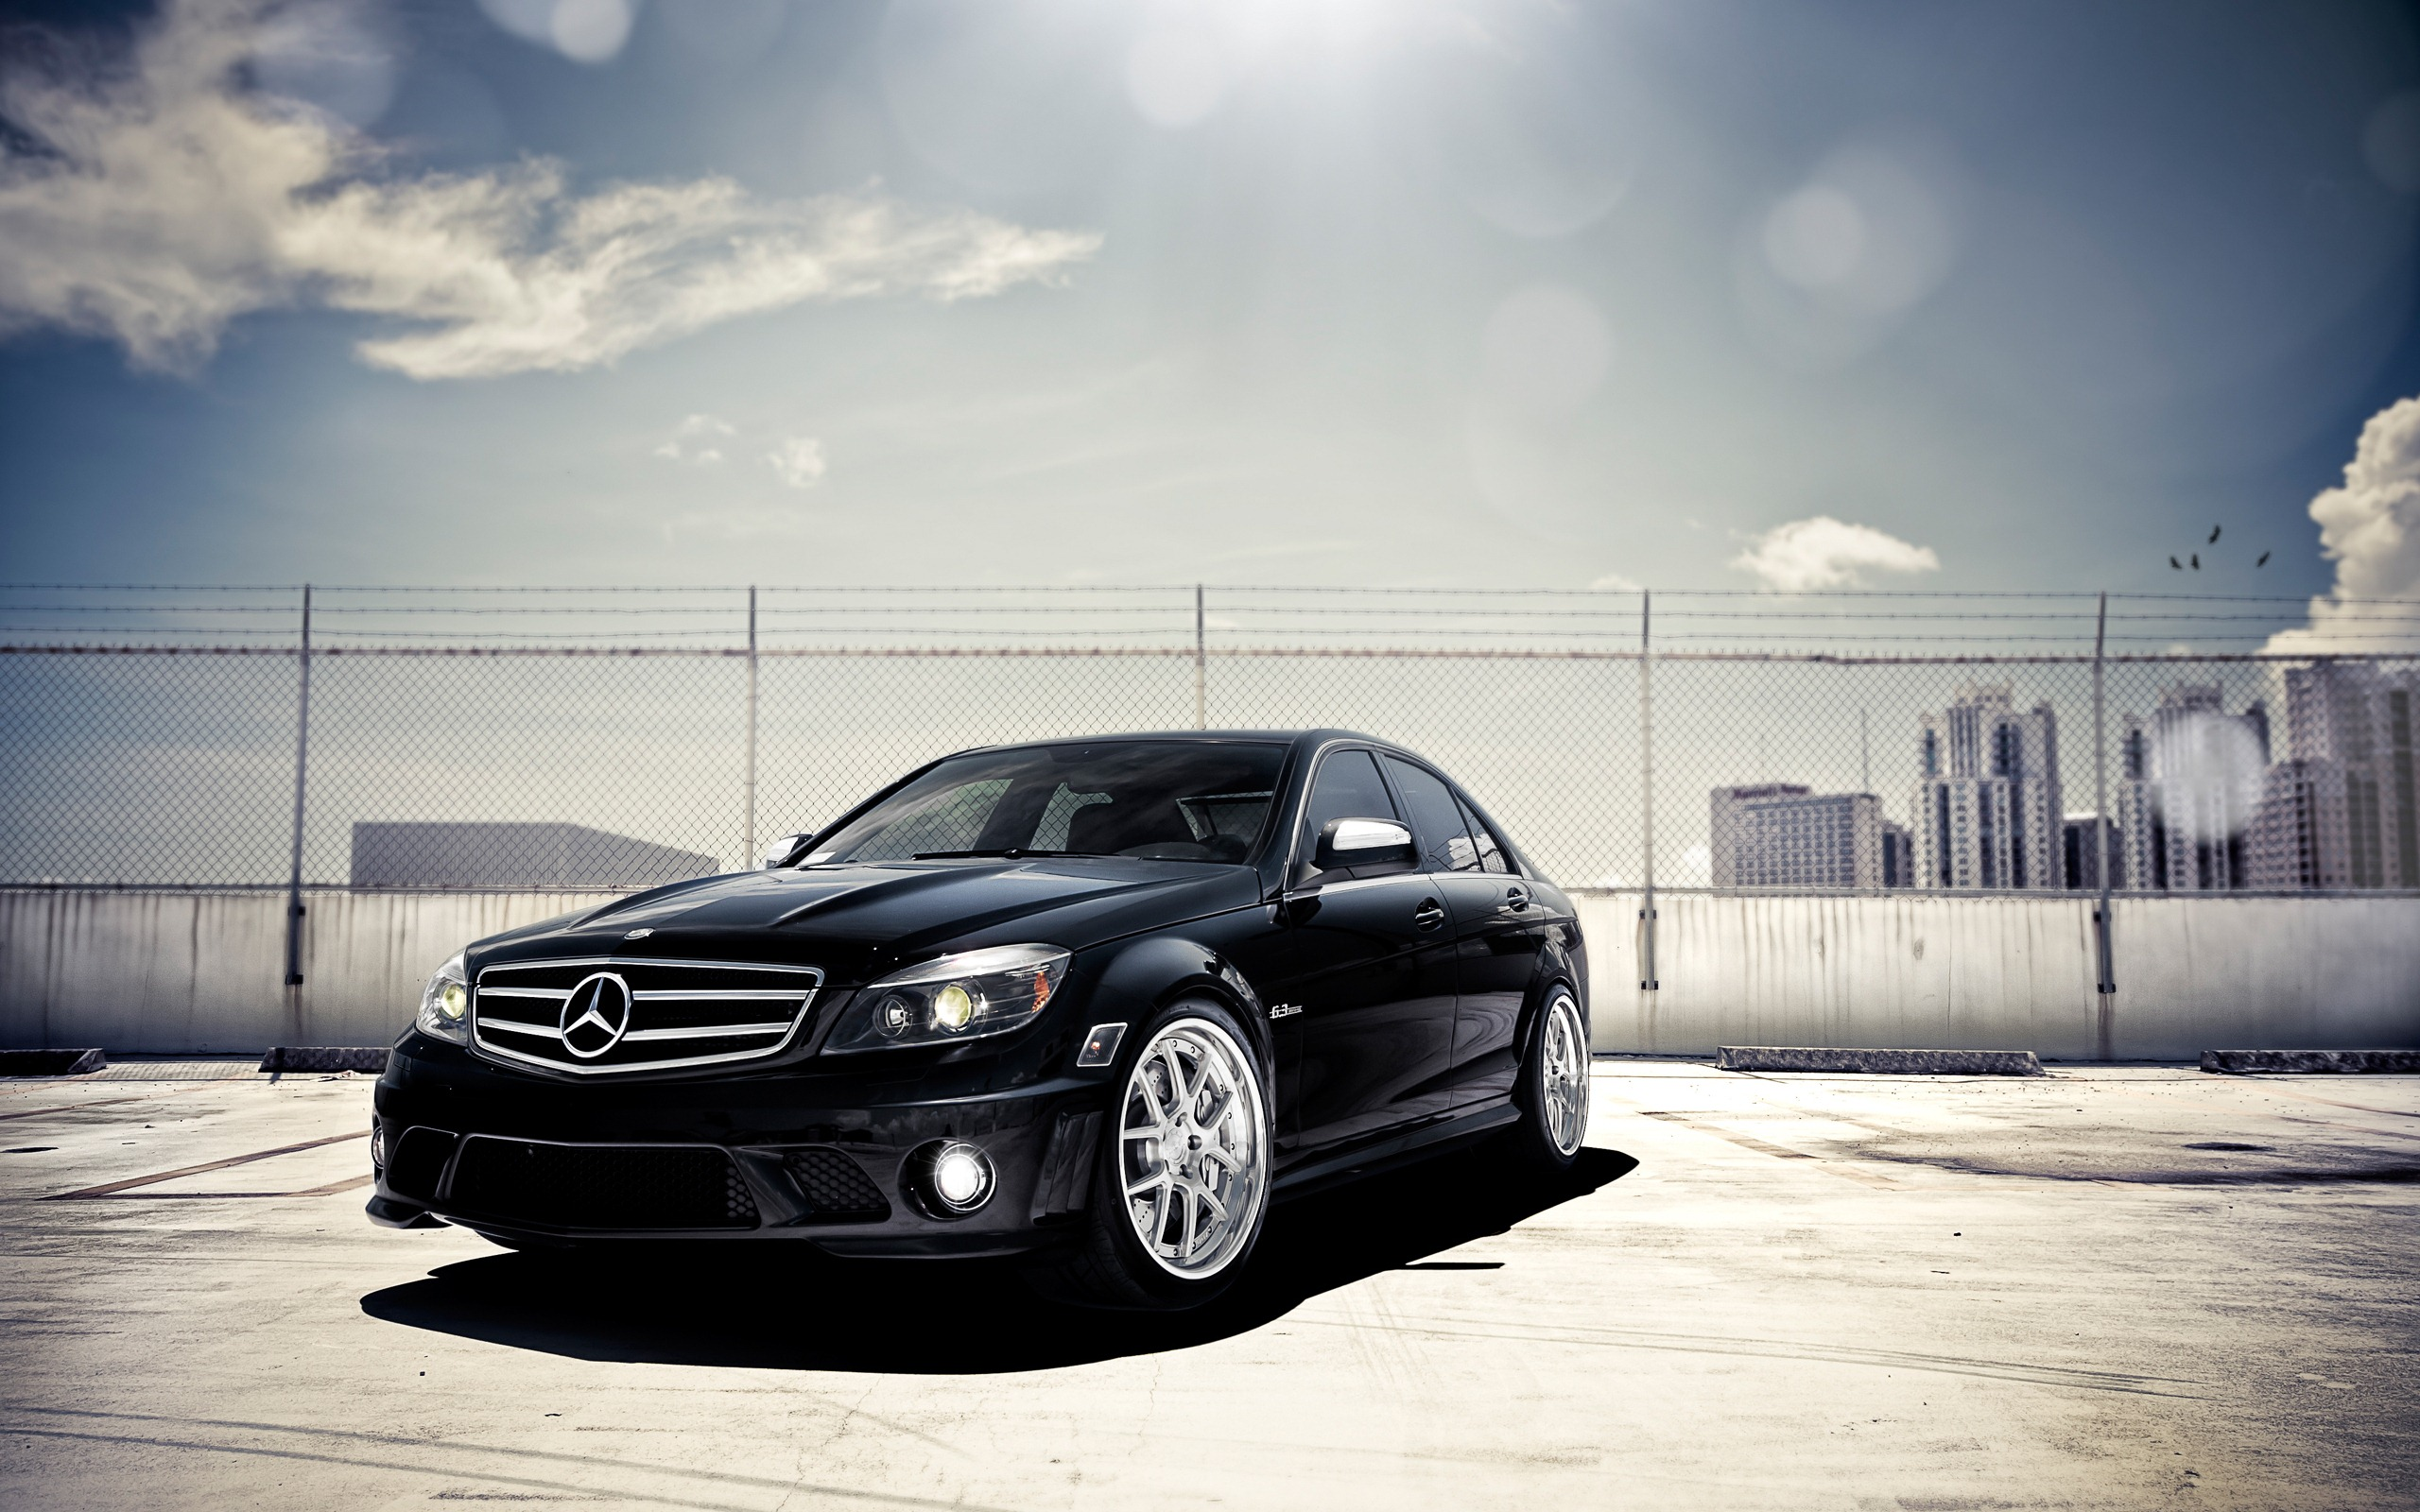 Hd Car Wallpapers For Laptop Free Download 20 Excellent Hd Mercedes Wallpapers